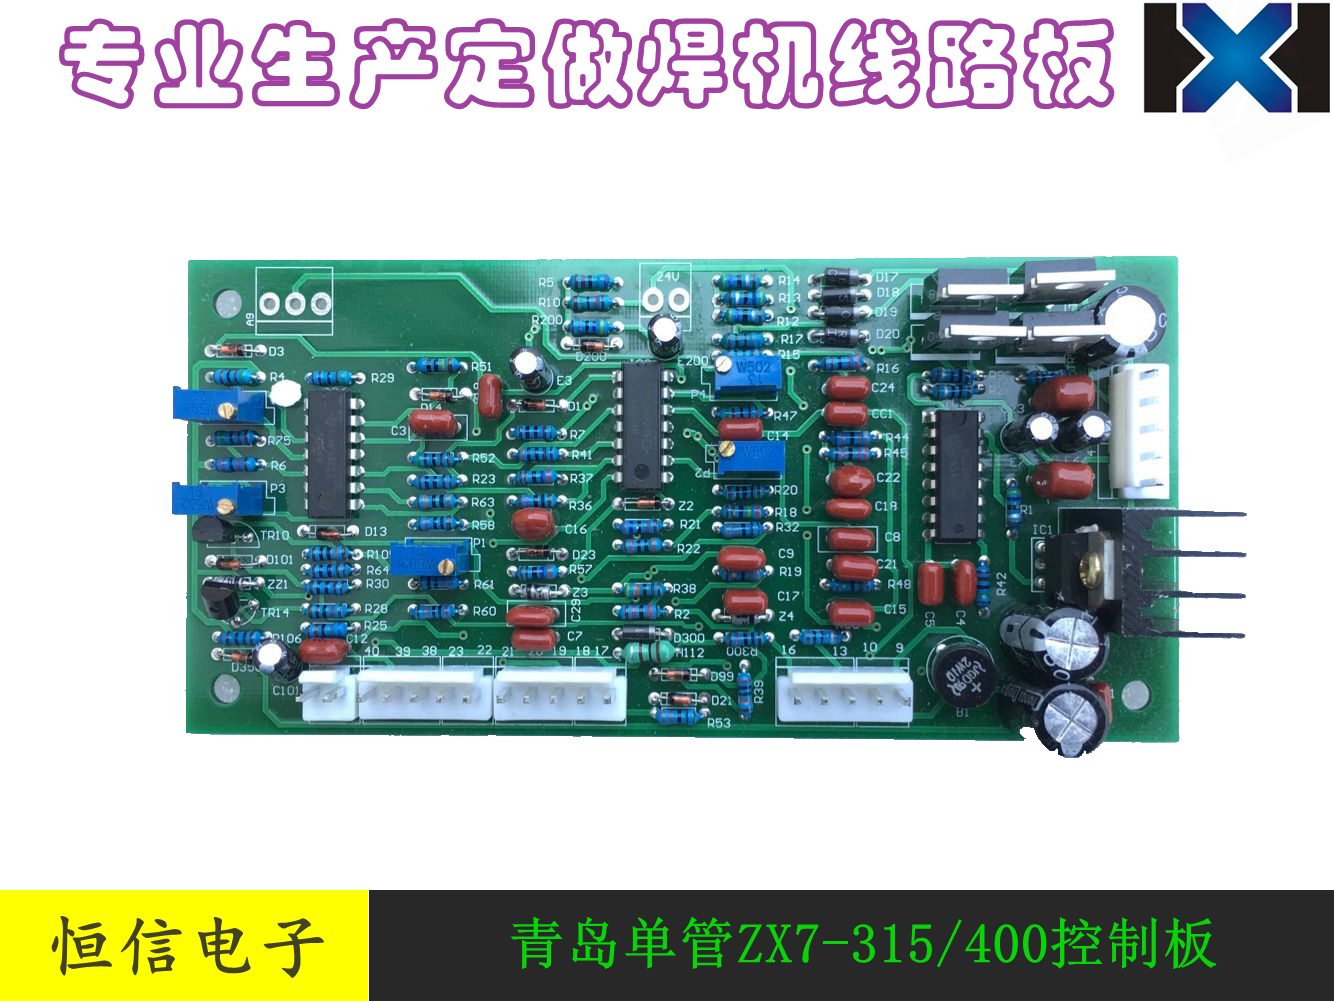 Welding Machine Circuit Board Igbt Welder Control Panel 315 Control Panel Qingdao Welding Machine Circuit Board Hand & Power Tool Accessories Power Tool Accessories